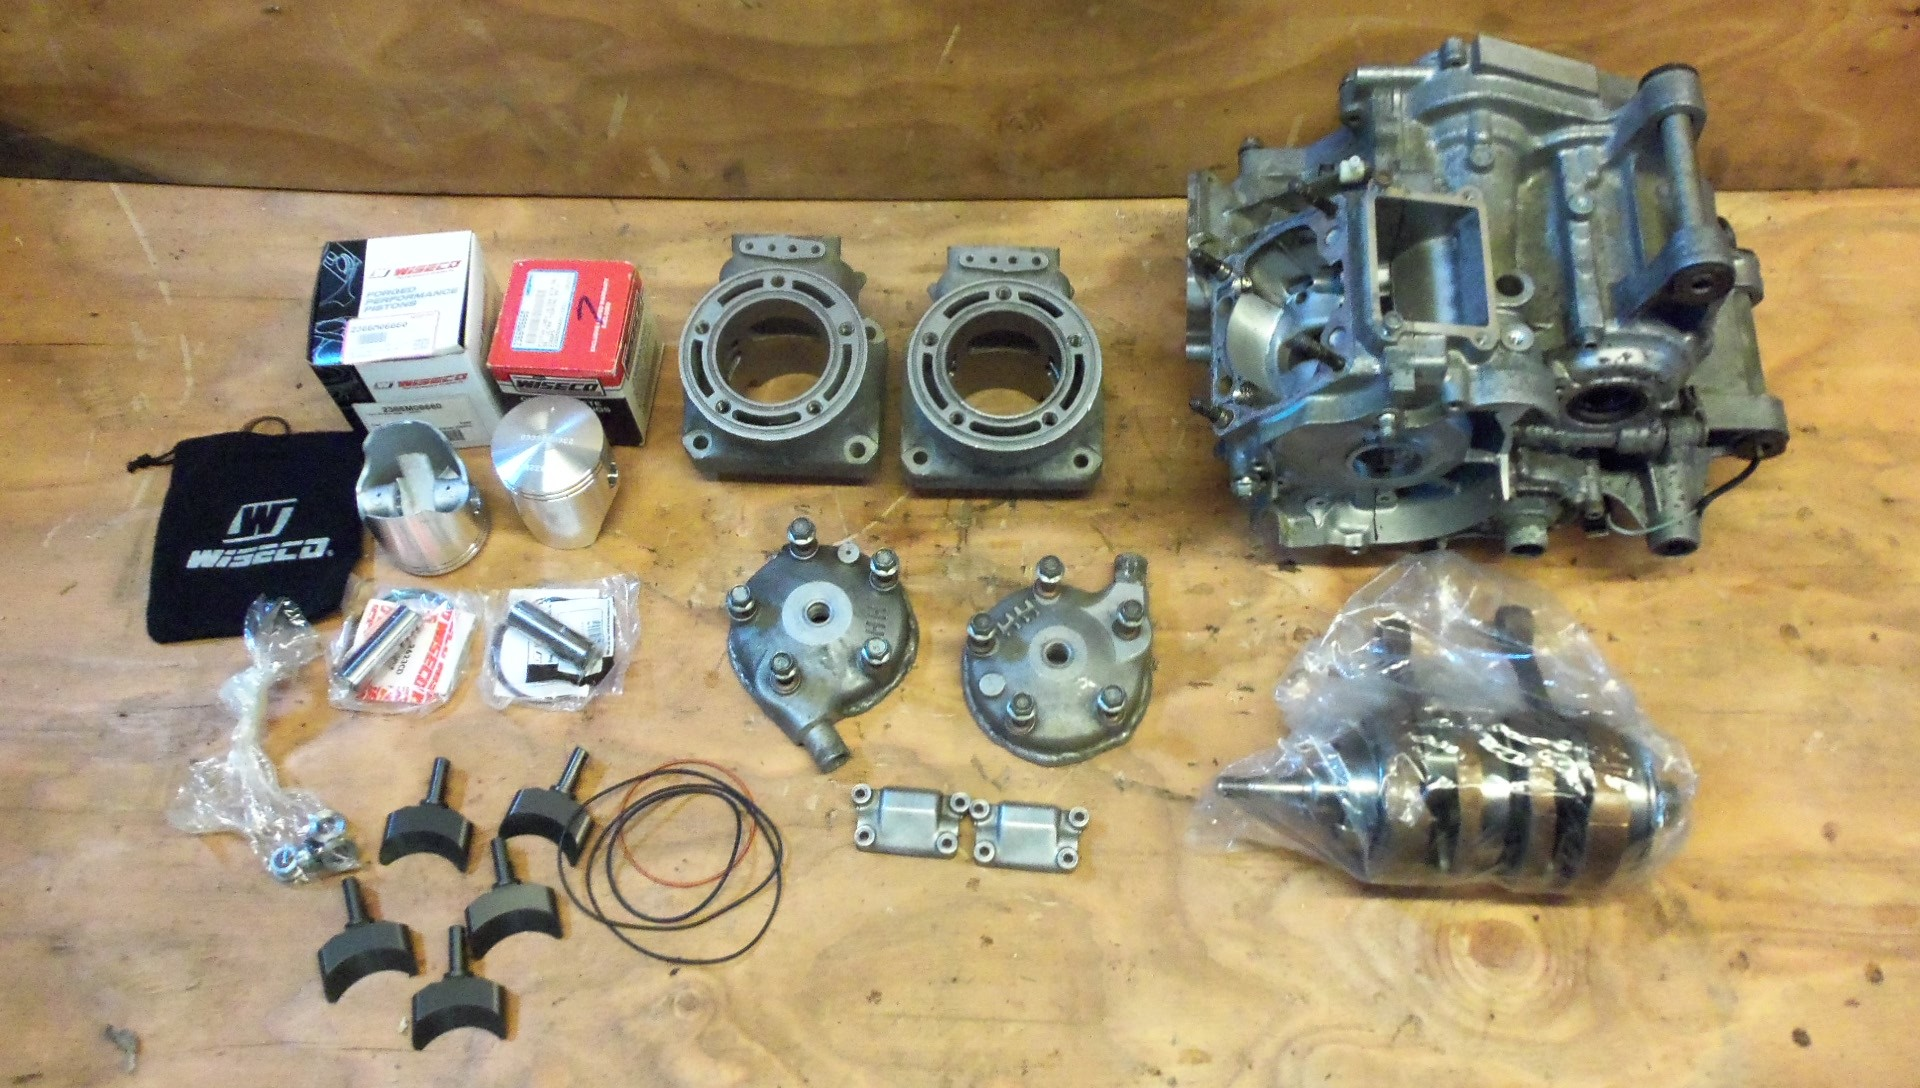 Favorit Coaster Brake Torpedo moreover 4dp 3xv Yamaha Tz 375cc Hh Big Bore Kit as well Offshore Wind Turbines Are Getting Bigger All The Time together with ProductList likewise Fig2. on main bearing